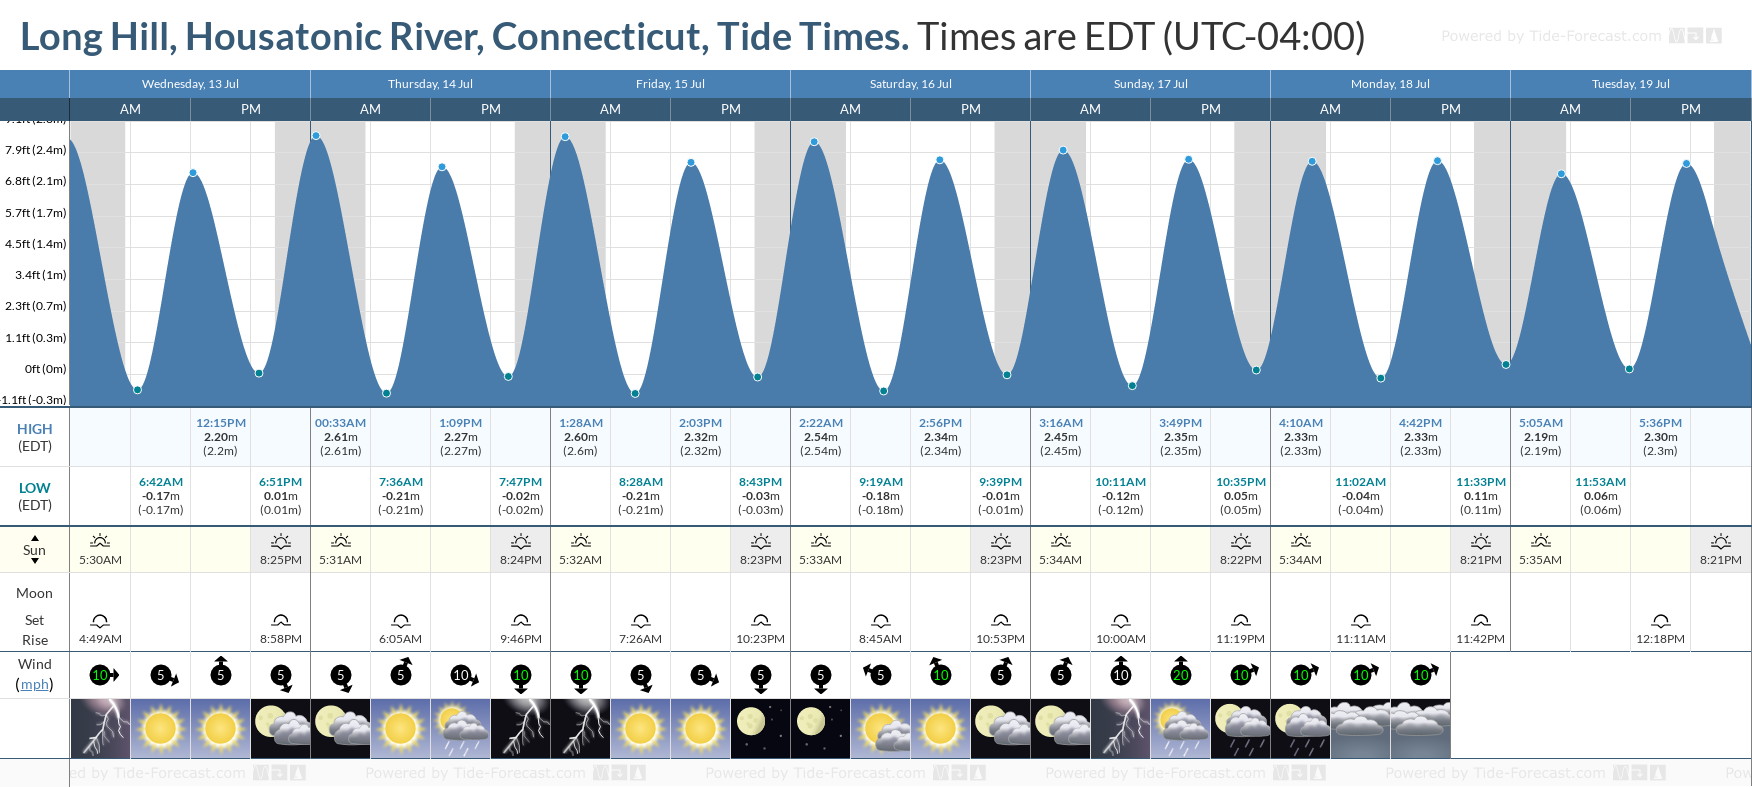 Long Hill, Housatonic River, Connecticut Tide Chart including high and low tide tide times for the next 7 days